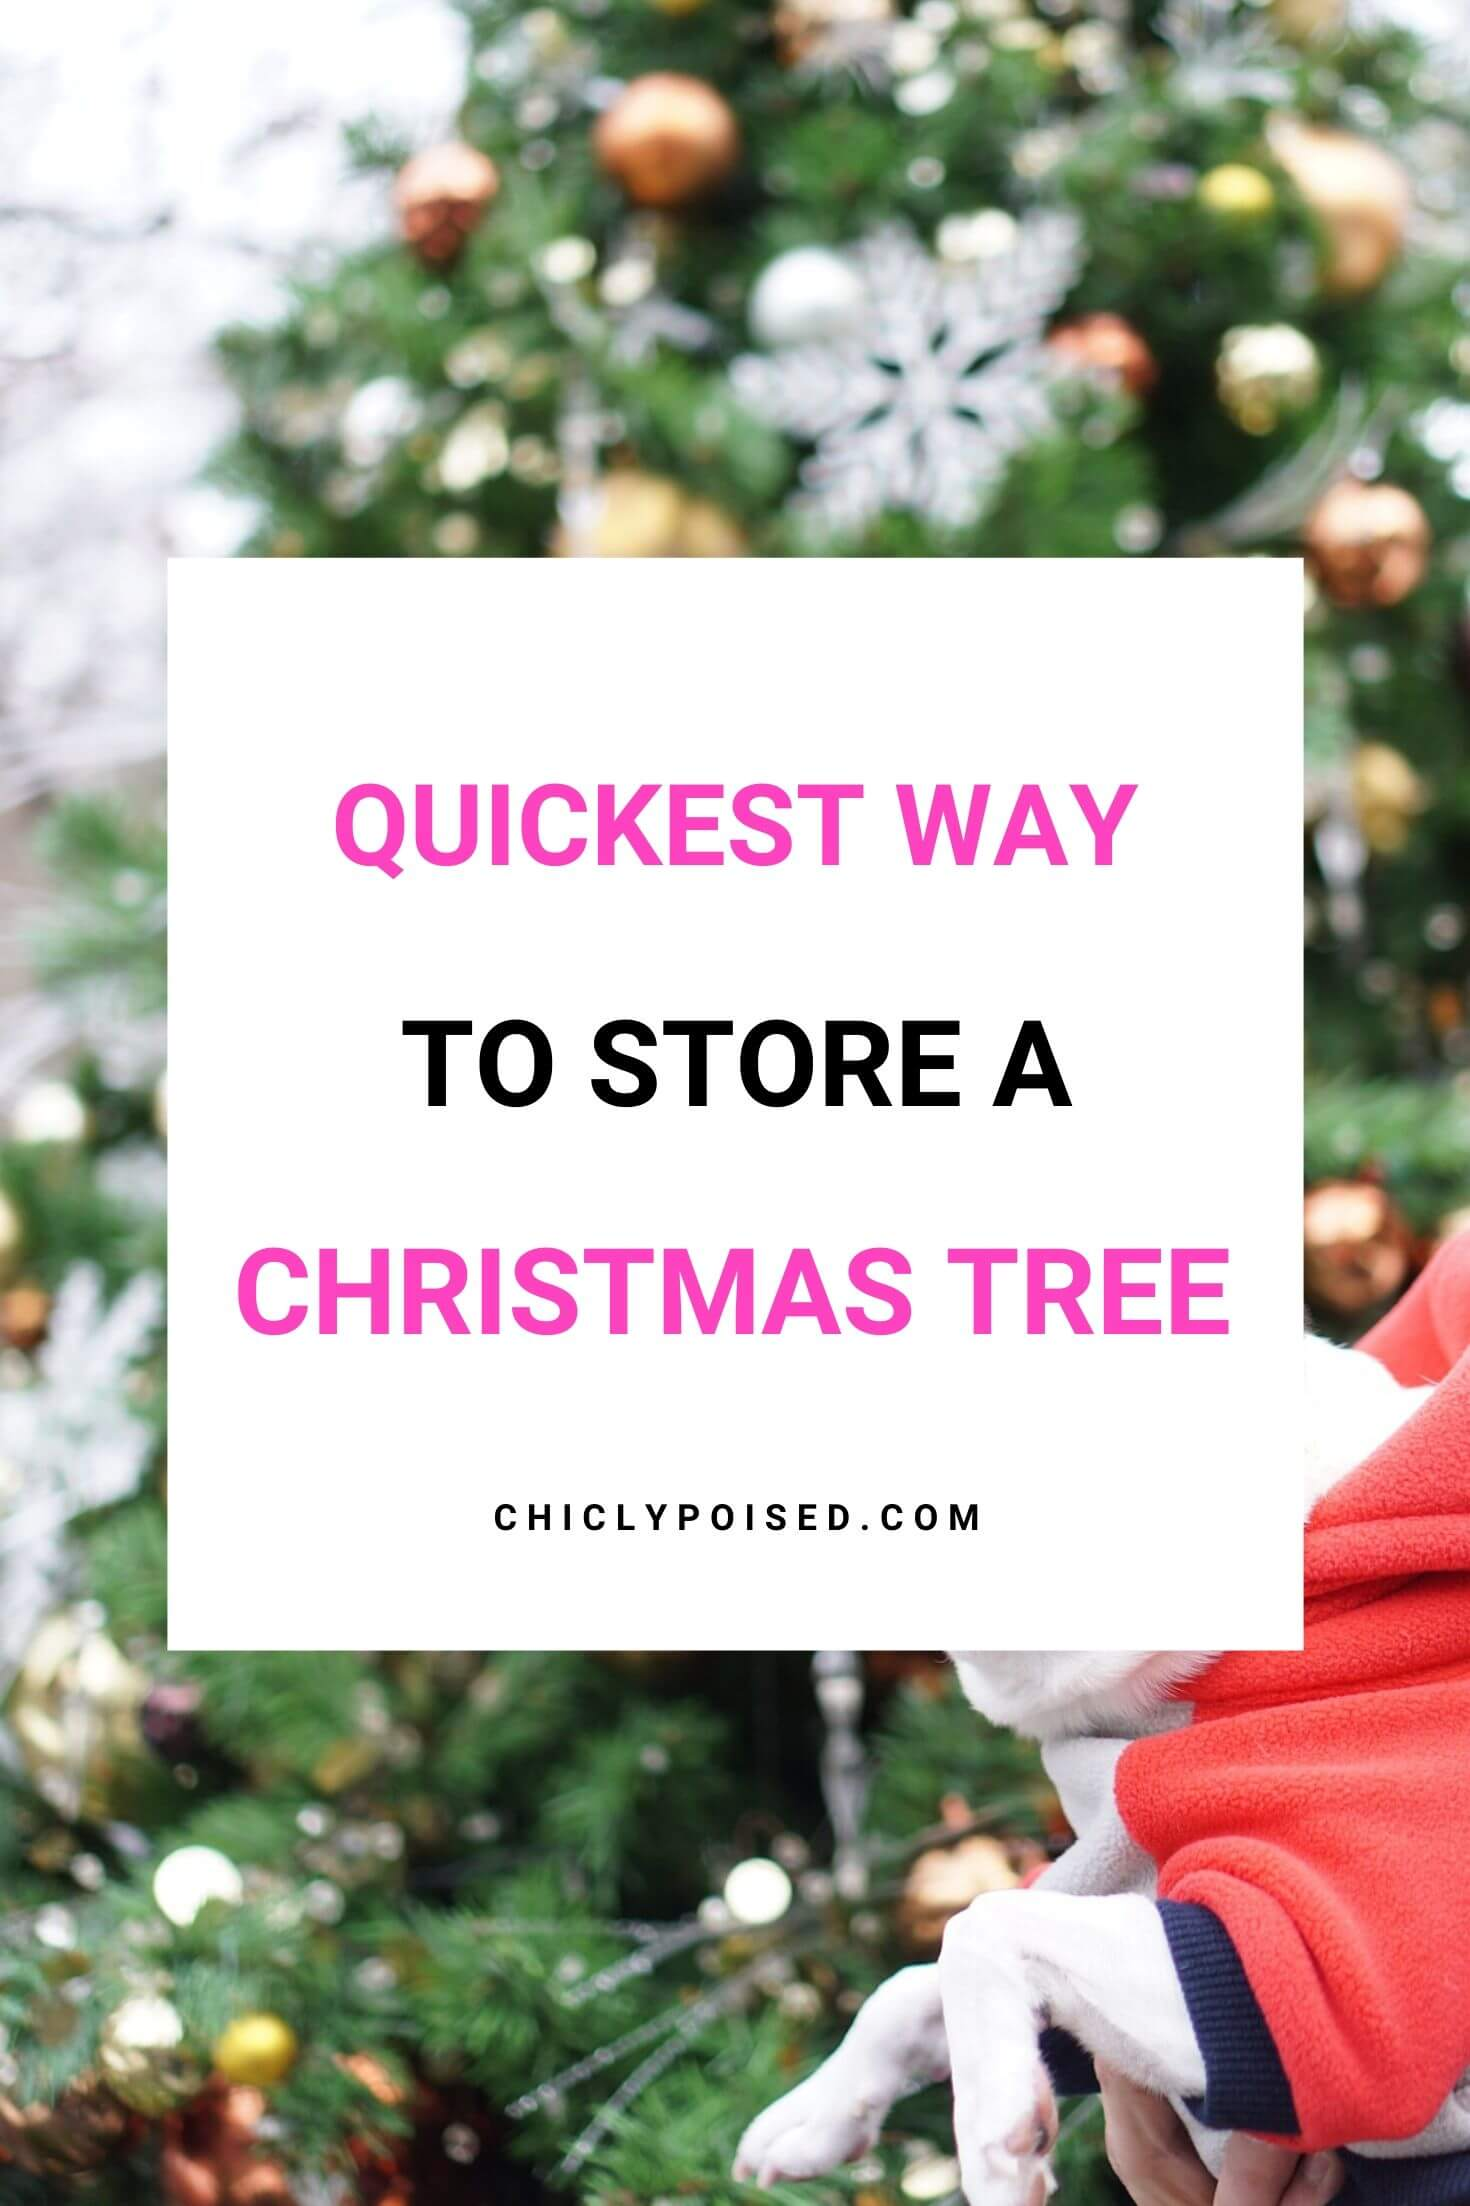 Quickest Way To Store An Artificial Christmas Tree 2 of 2